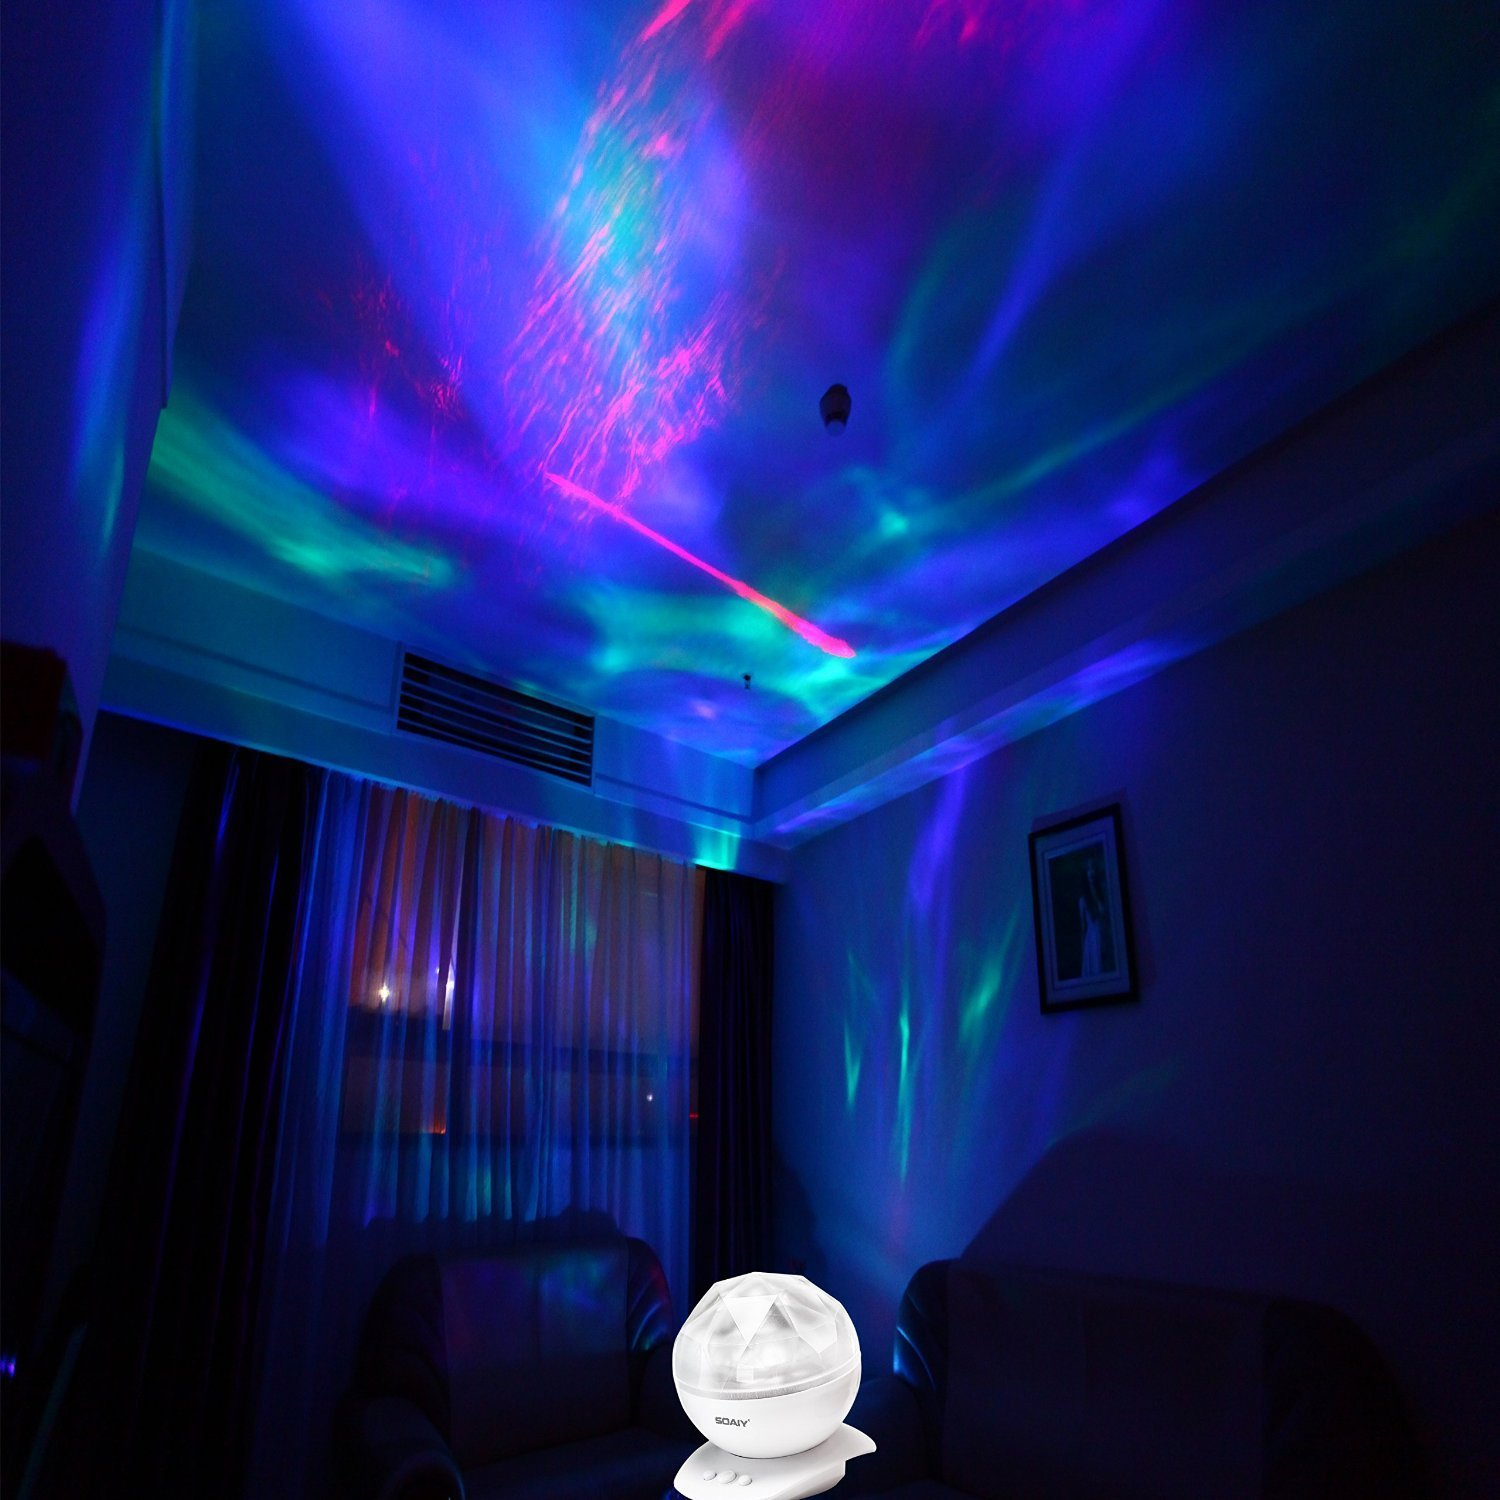 SOAIY Rotation Sleep Soothing Color Changing Aurora Night Light ...